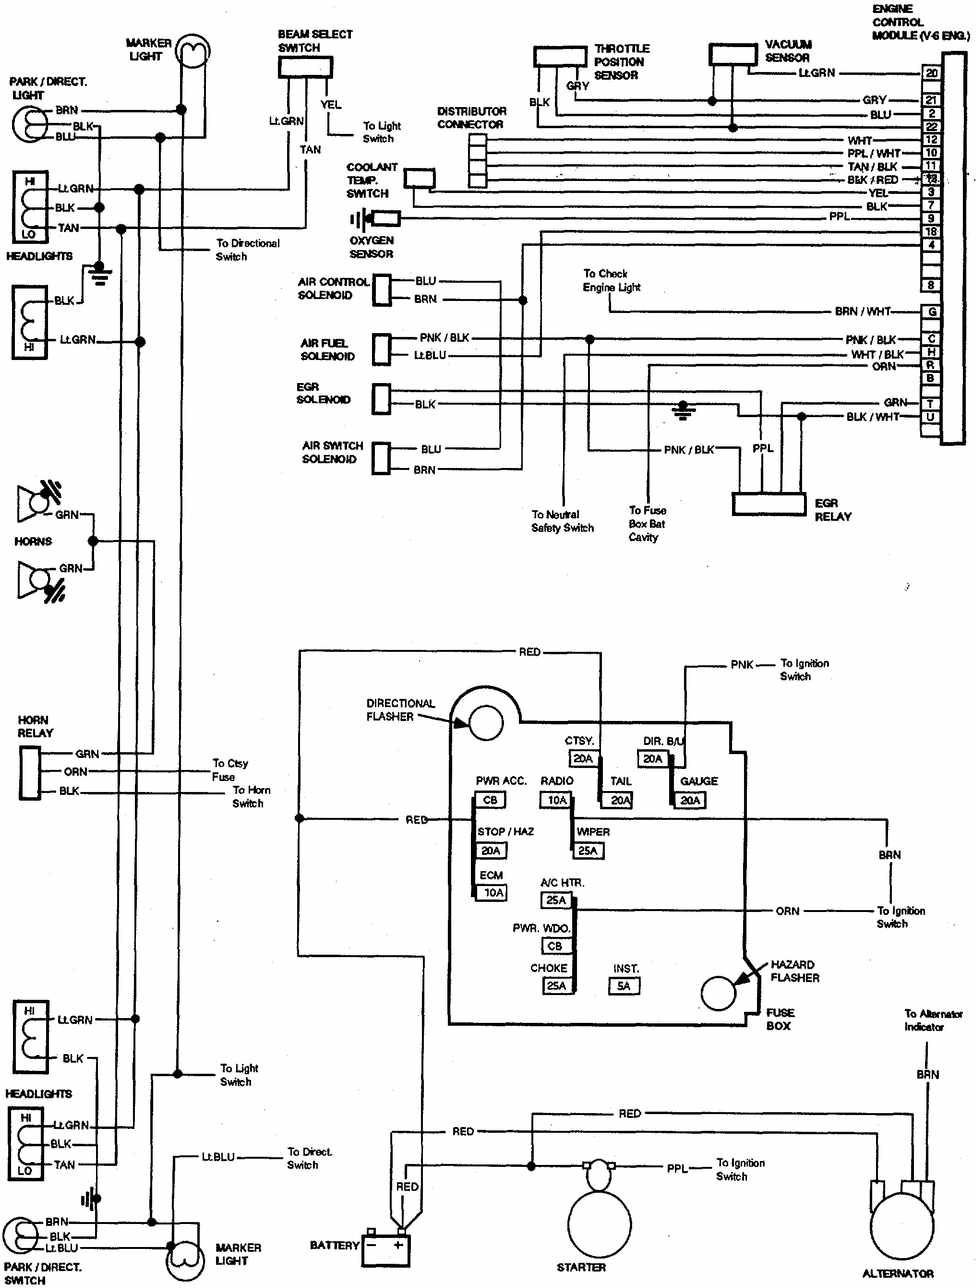 81 Corvette Torque Converter Wiring Diagram Diagrams 1980 Engine Herein We Can See The 1981 1987 Chevrolet V8 Trucks Electrical Rh Pinterest Com 82